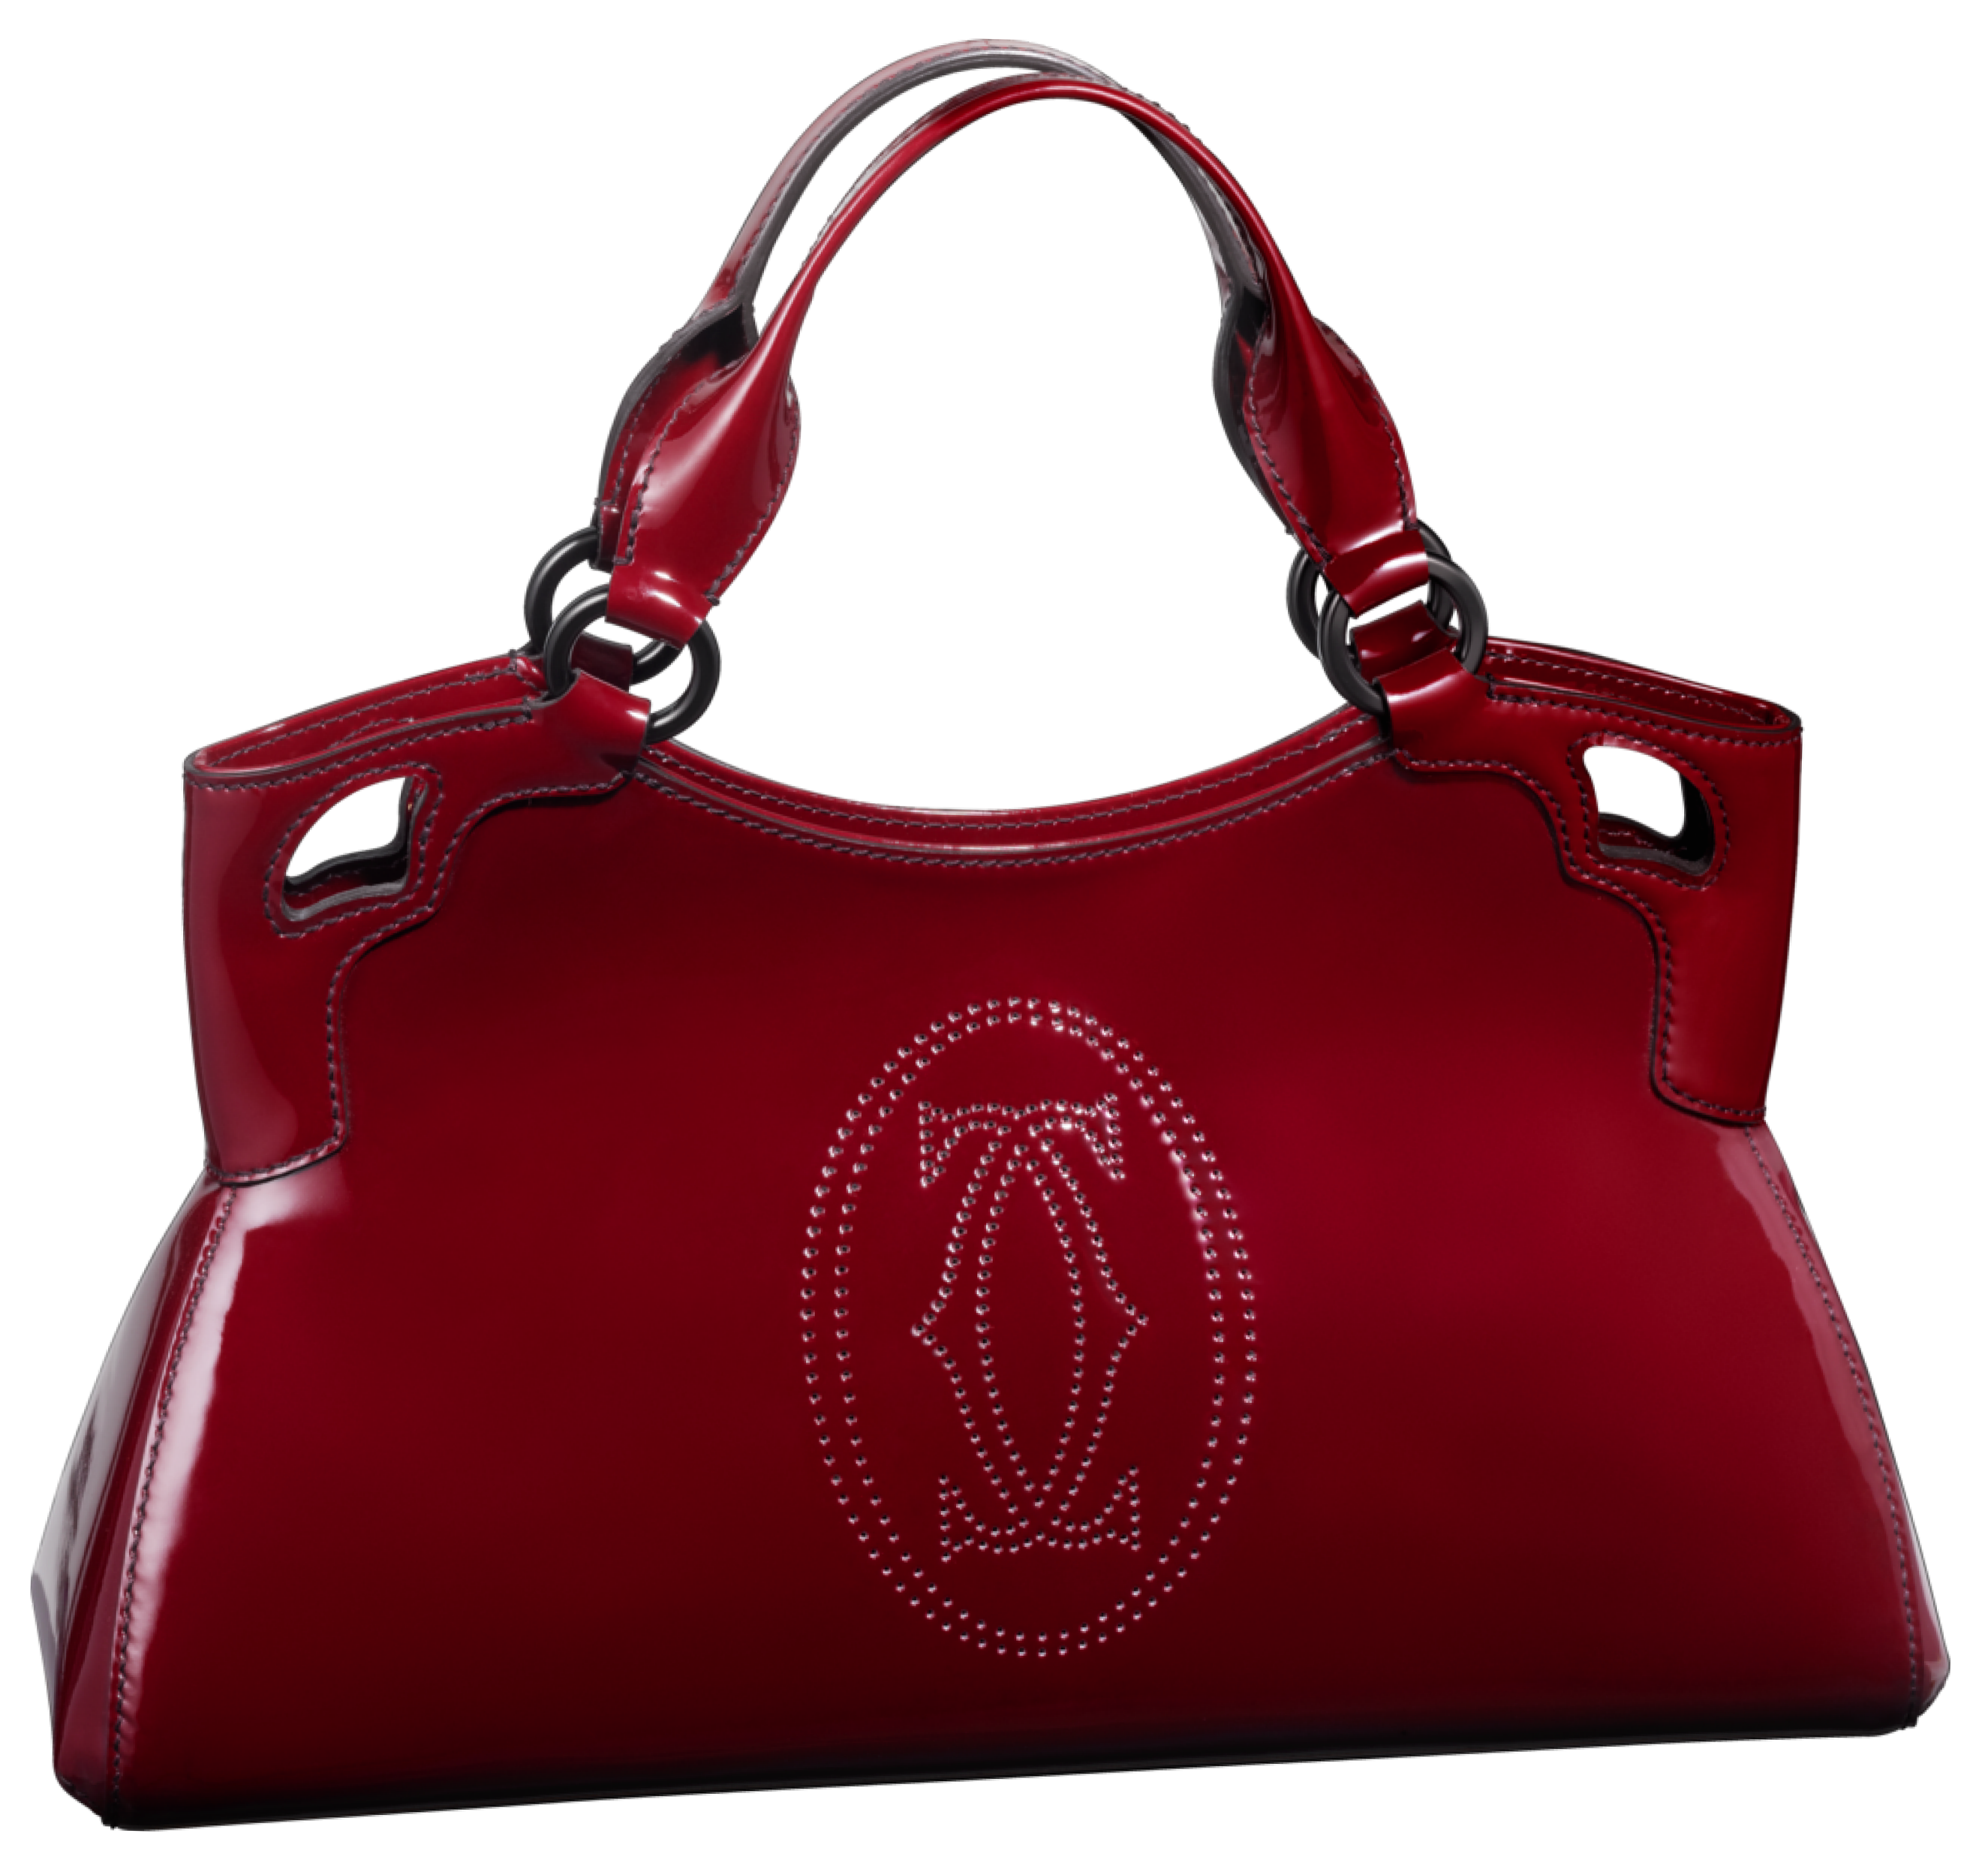 Red purse png. Cartier handbag clip art